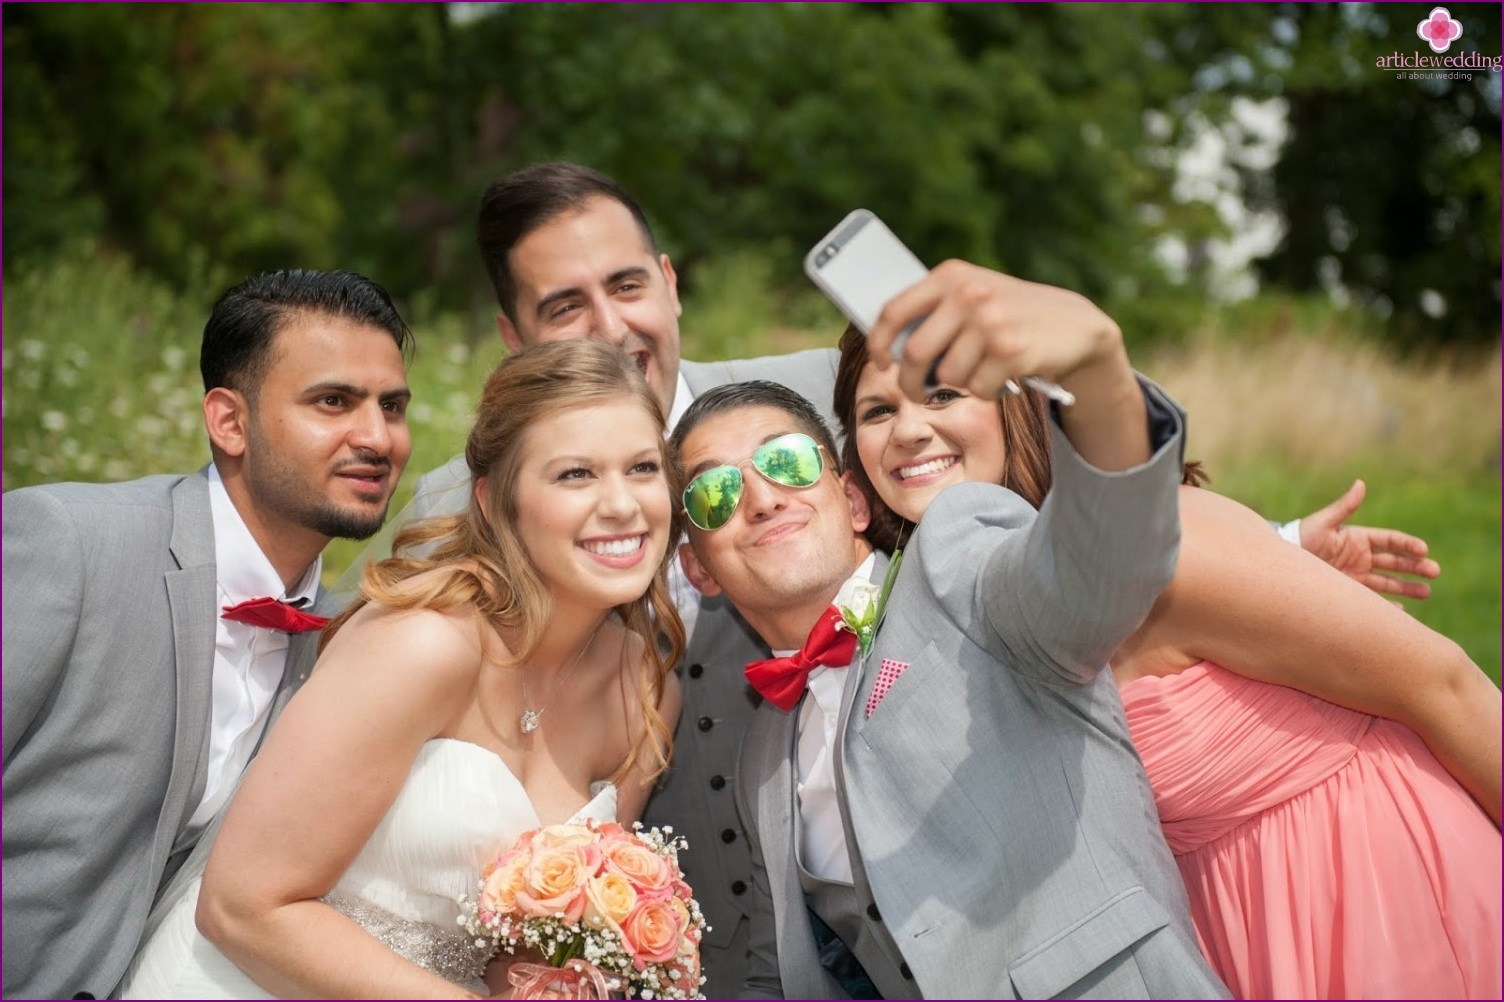 Selfie at the wedding